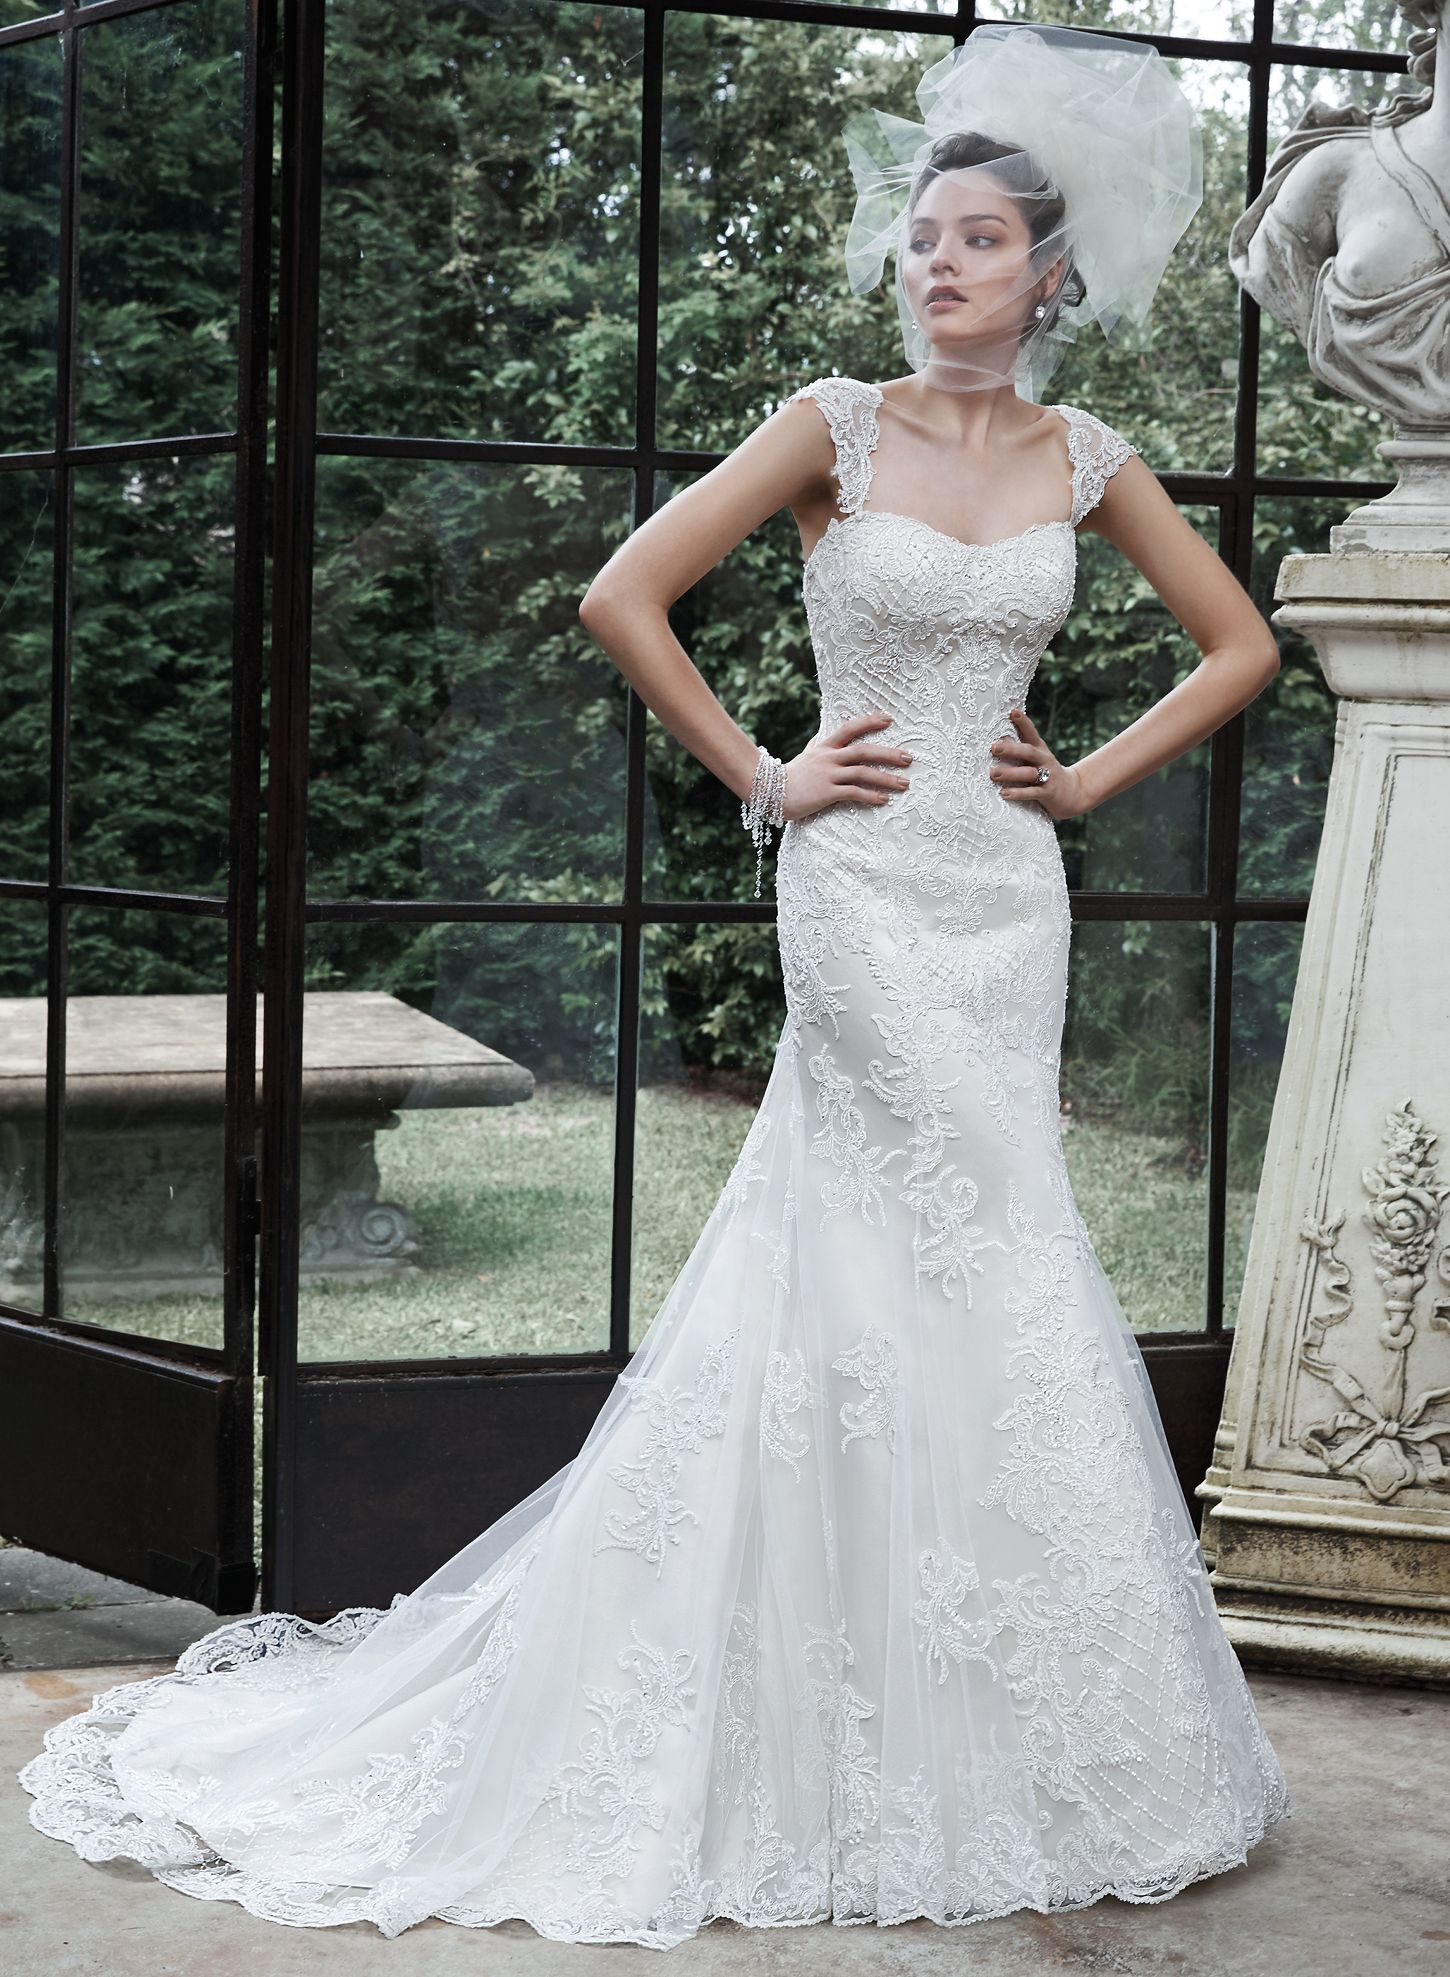 Maggie Sottero Wedding Dresses | Maggie sottero, Wedding and Weddings